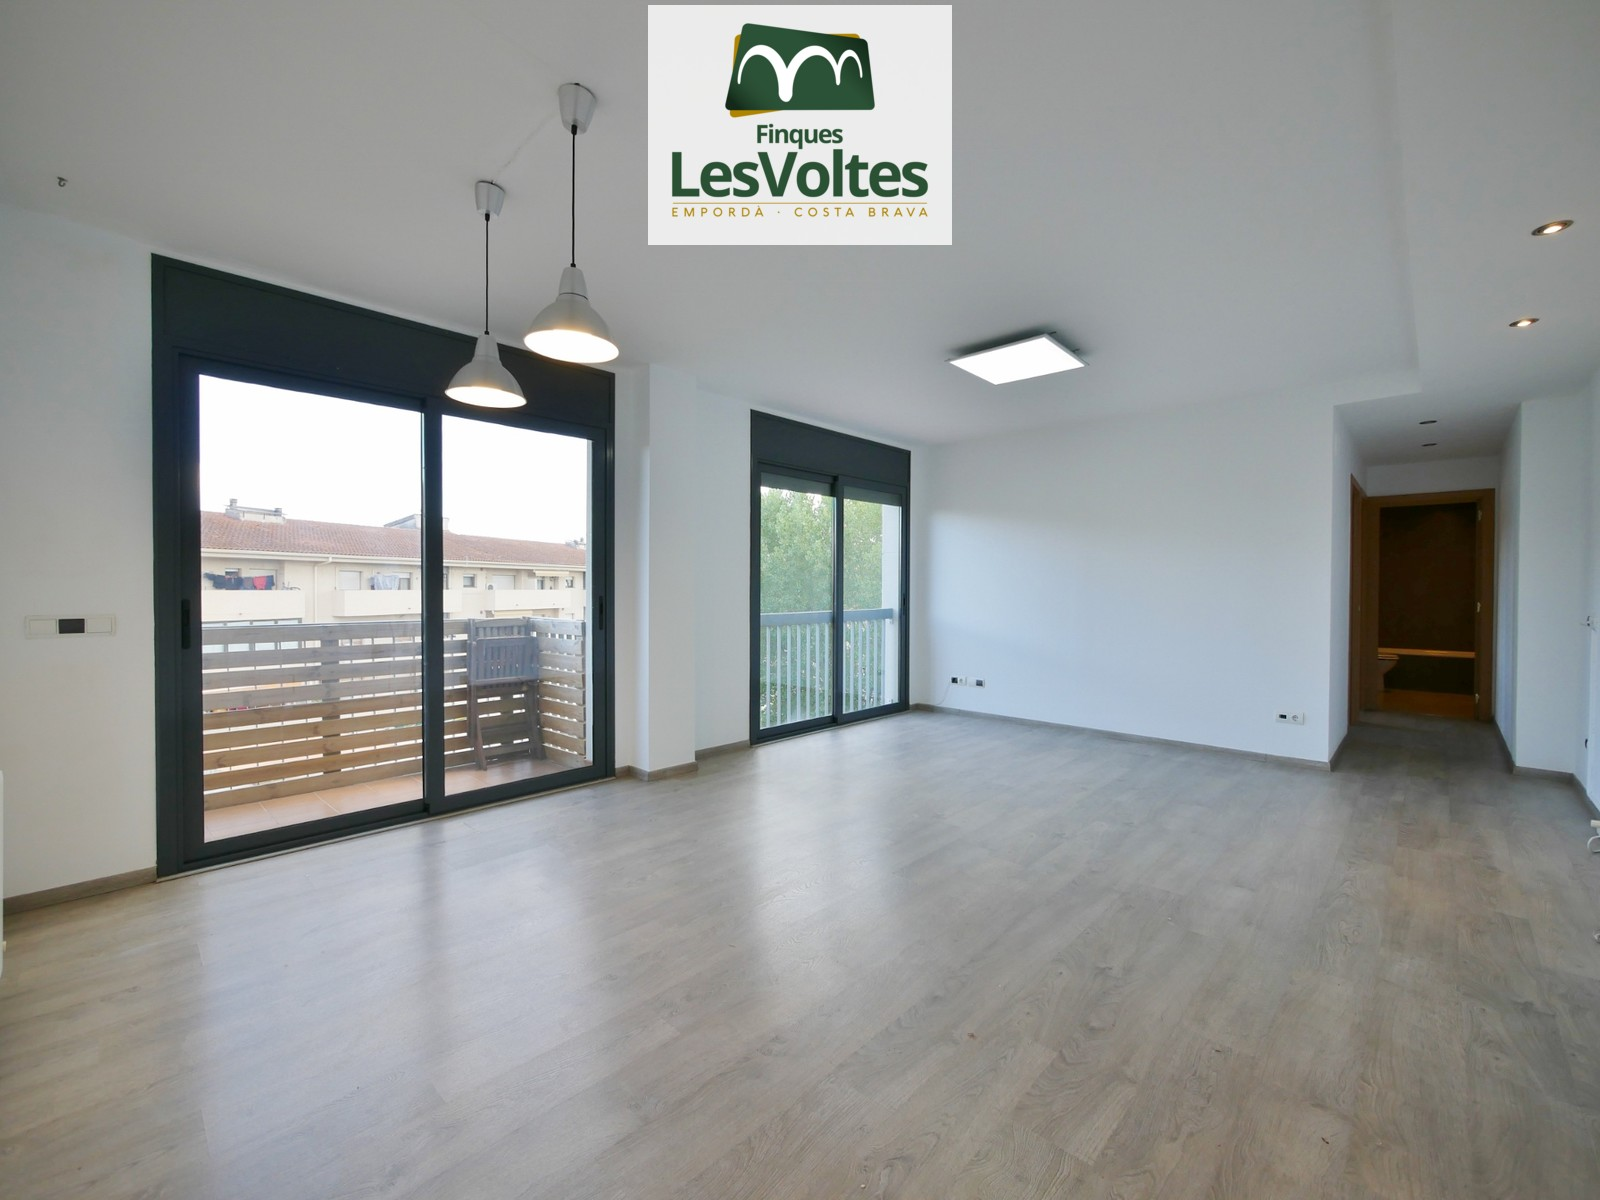 55 M2 APARTMENT ON THE THIRD FLOOR WITH ELEVATOR, AND 10 M2 PARKING FOR RENT IN LA BISBAL D'EMPORDÀ.